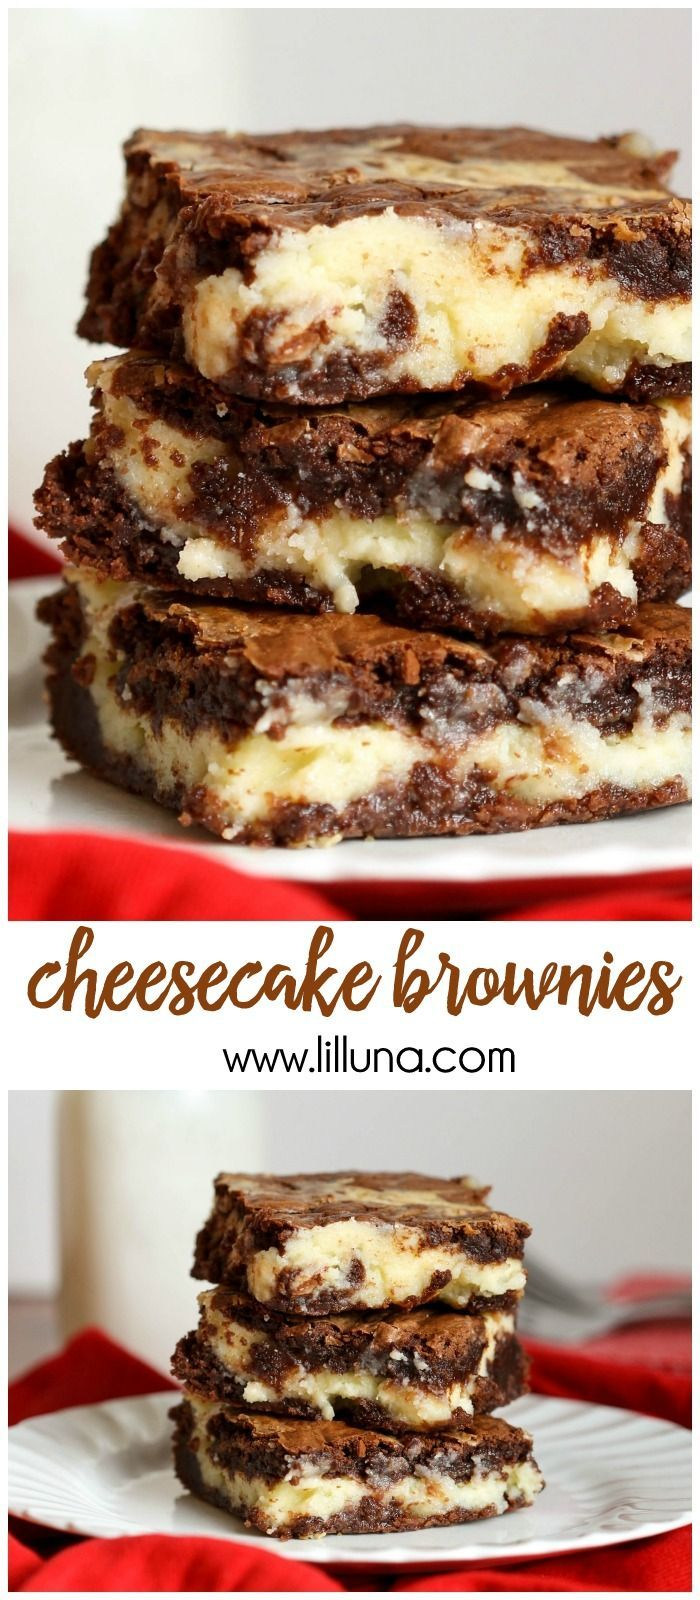 AMAZING Cheesecake Brownies - the delicious chocolate dessert with a cream cheese and white chocolate chip layer. Recipe on { lilluna.com }